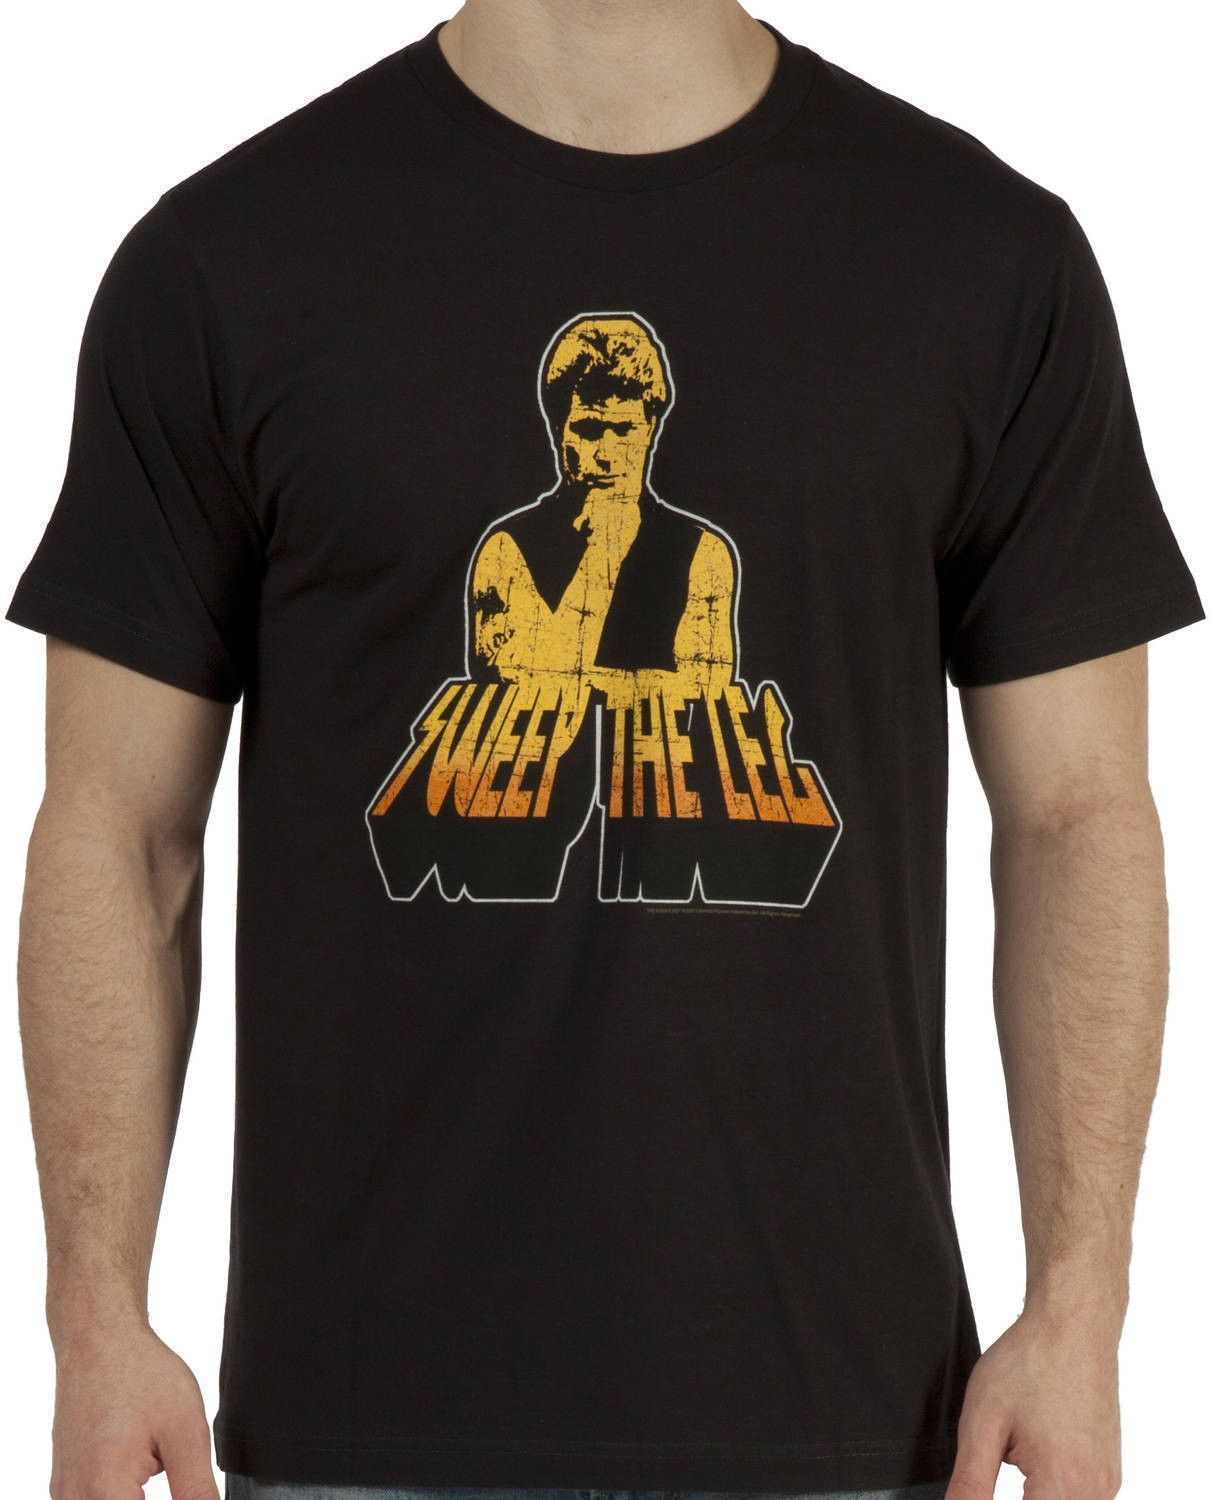 df6cde092 Karate Kid Sweep The Leg Cobra Kai T-Shirt | Closet Goals | Cobra ...